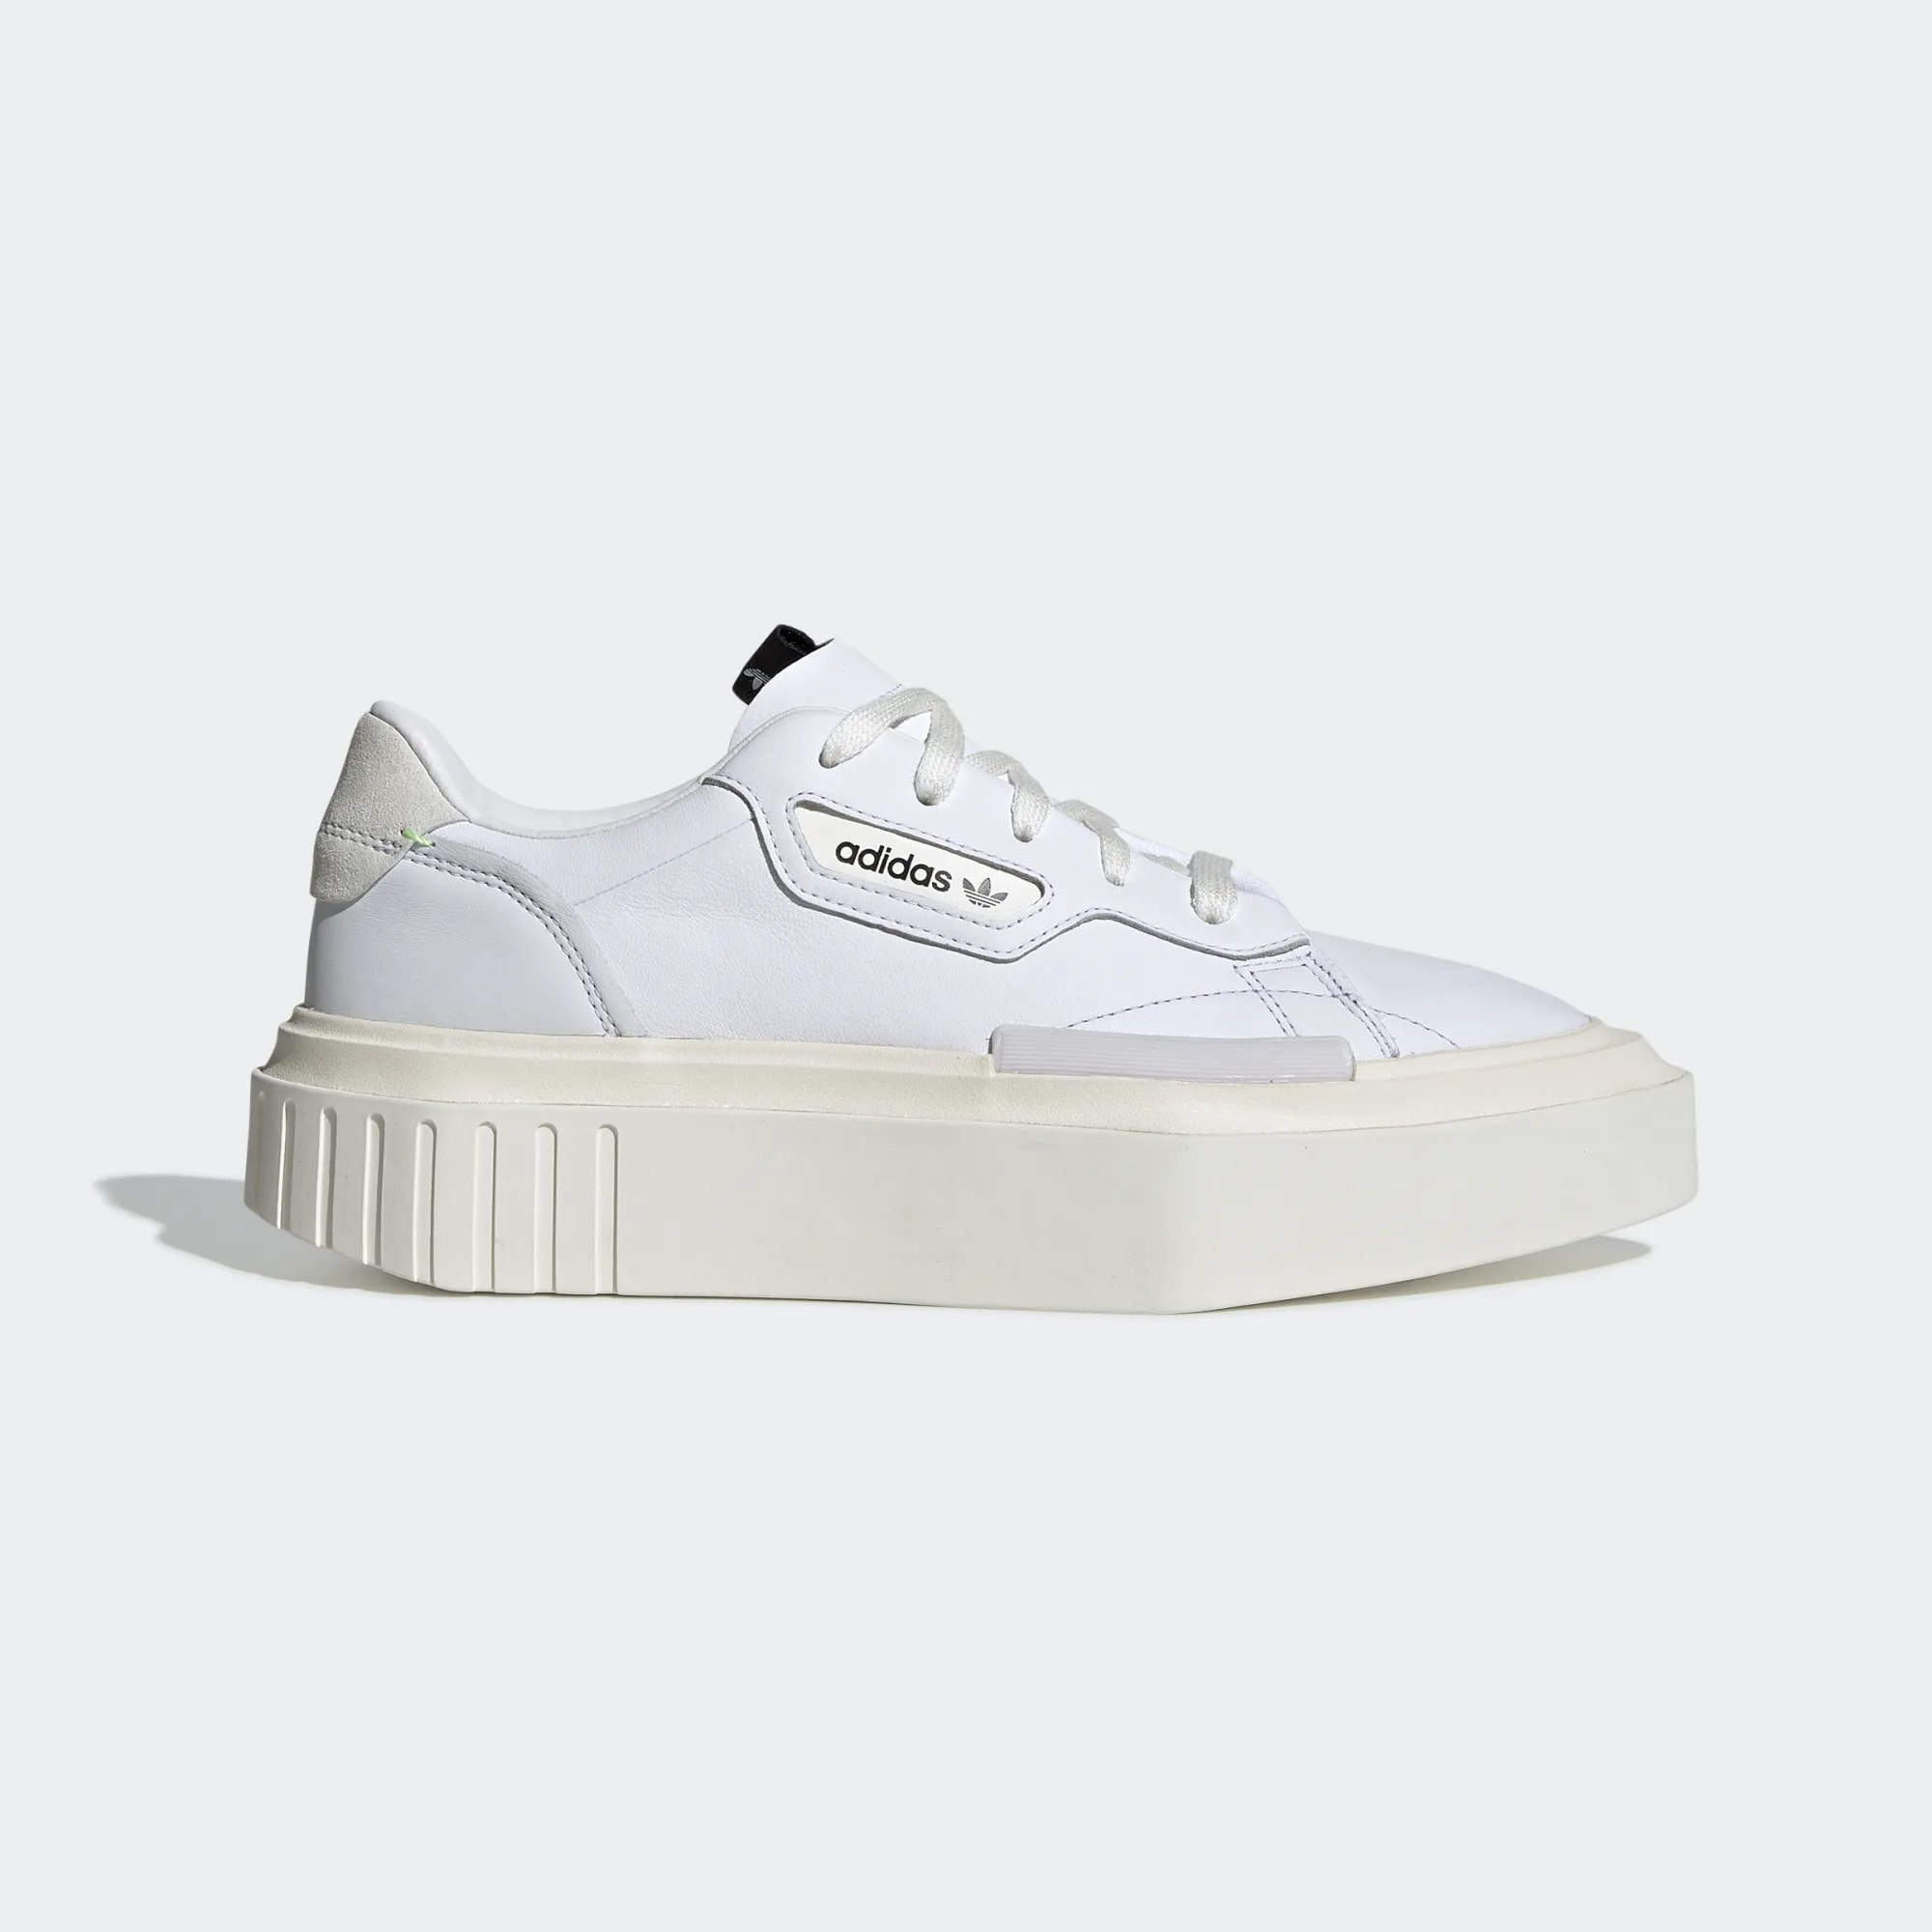 adidas Originals Hypersleek W White Sneakers G54050